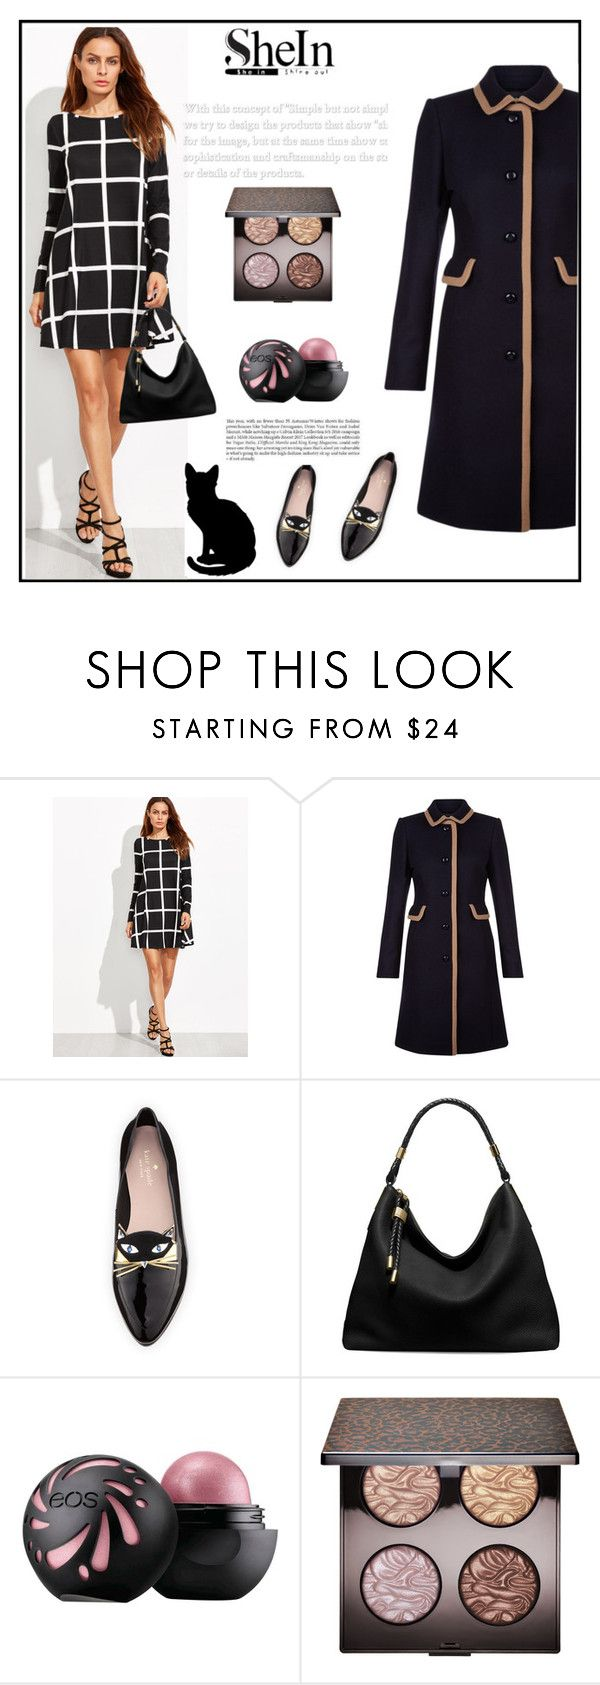 """Untitled #788"" by veronica7777 ❤ liked on Polyvore featuring Hobbs, Kate Spade, Michael Kors and Laura Mercier"